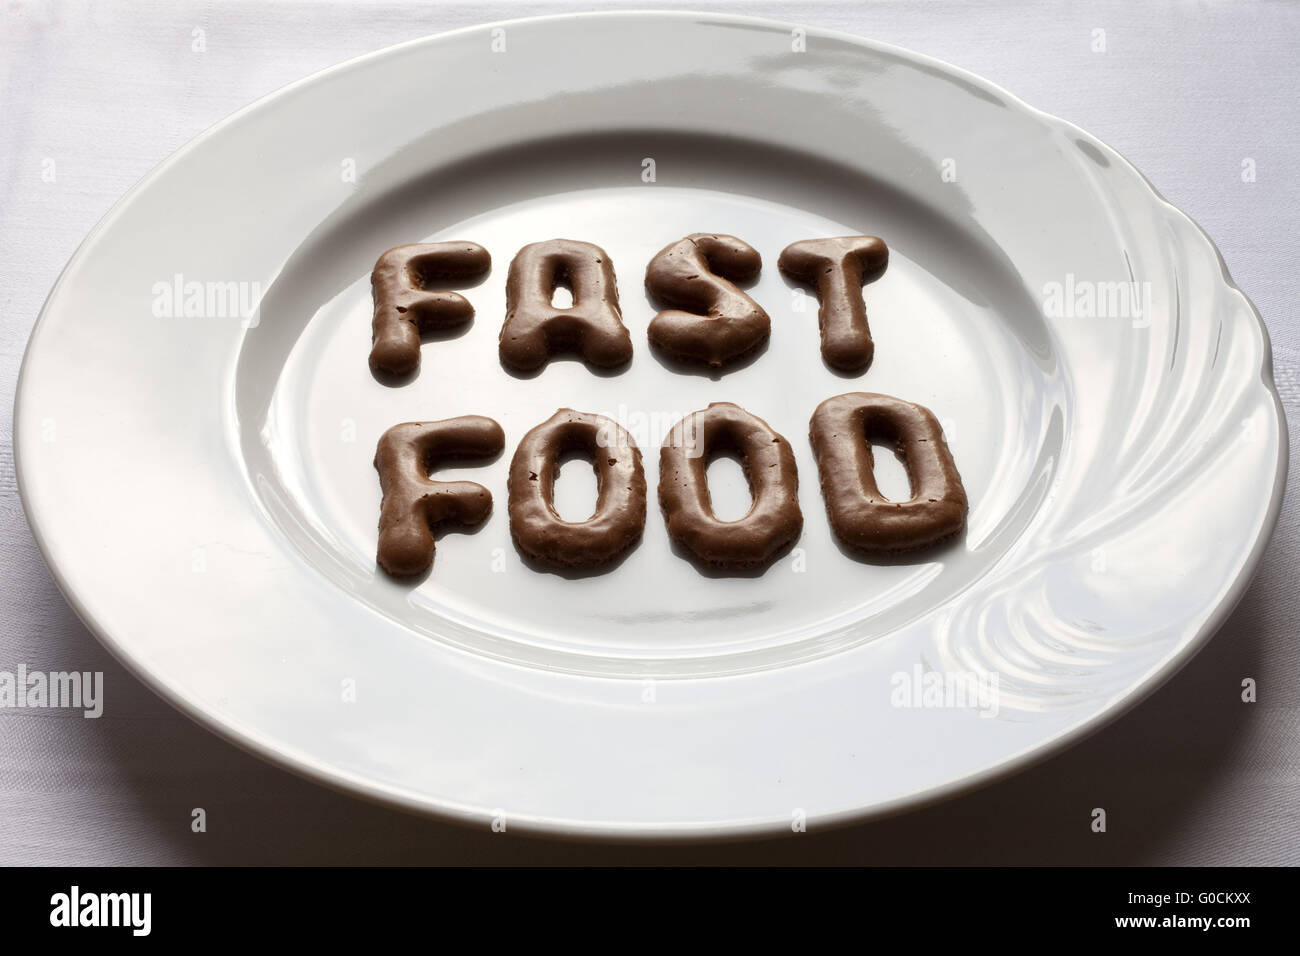 Letters forming the word fast food on a plate Stock Photo